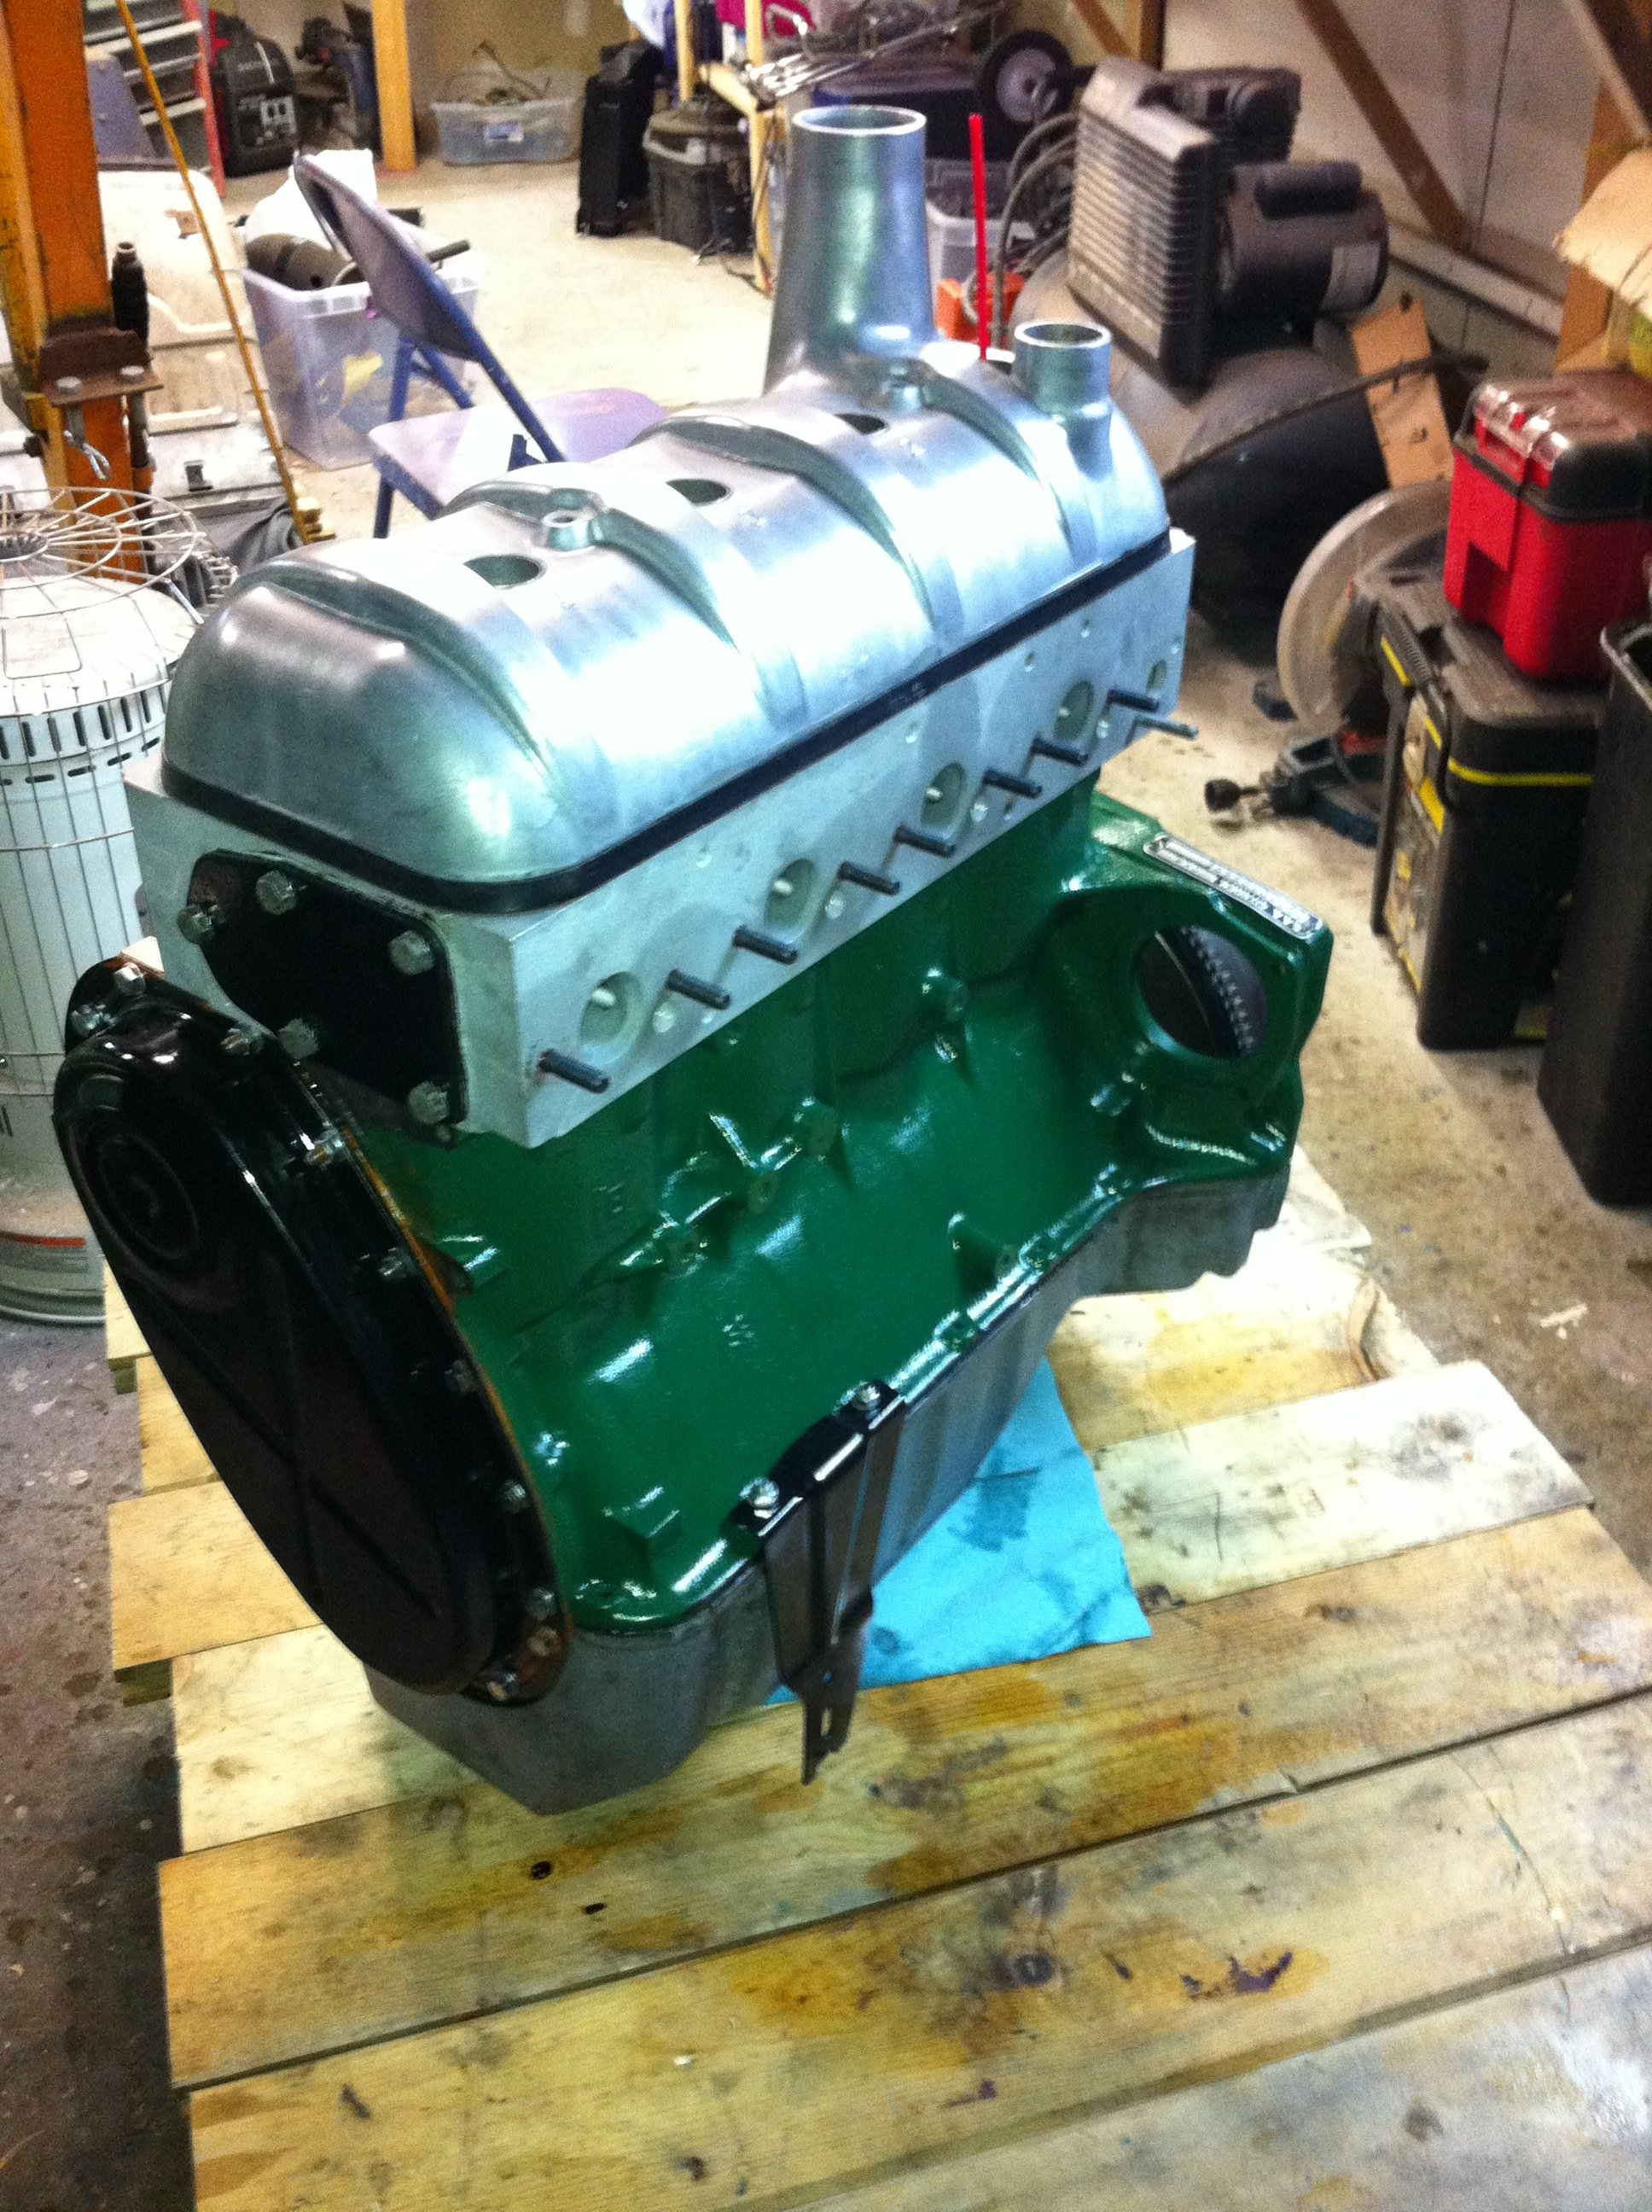 The basic engine is getting near complete, time for more cleaning and accessory installation